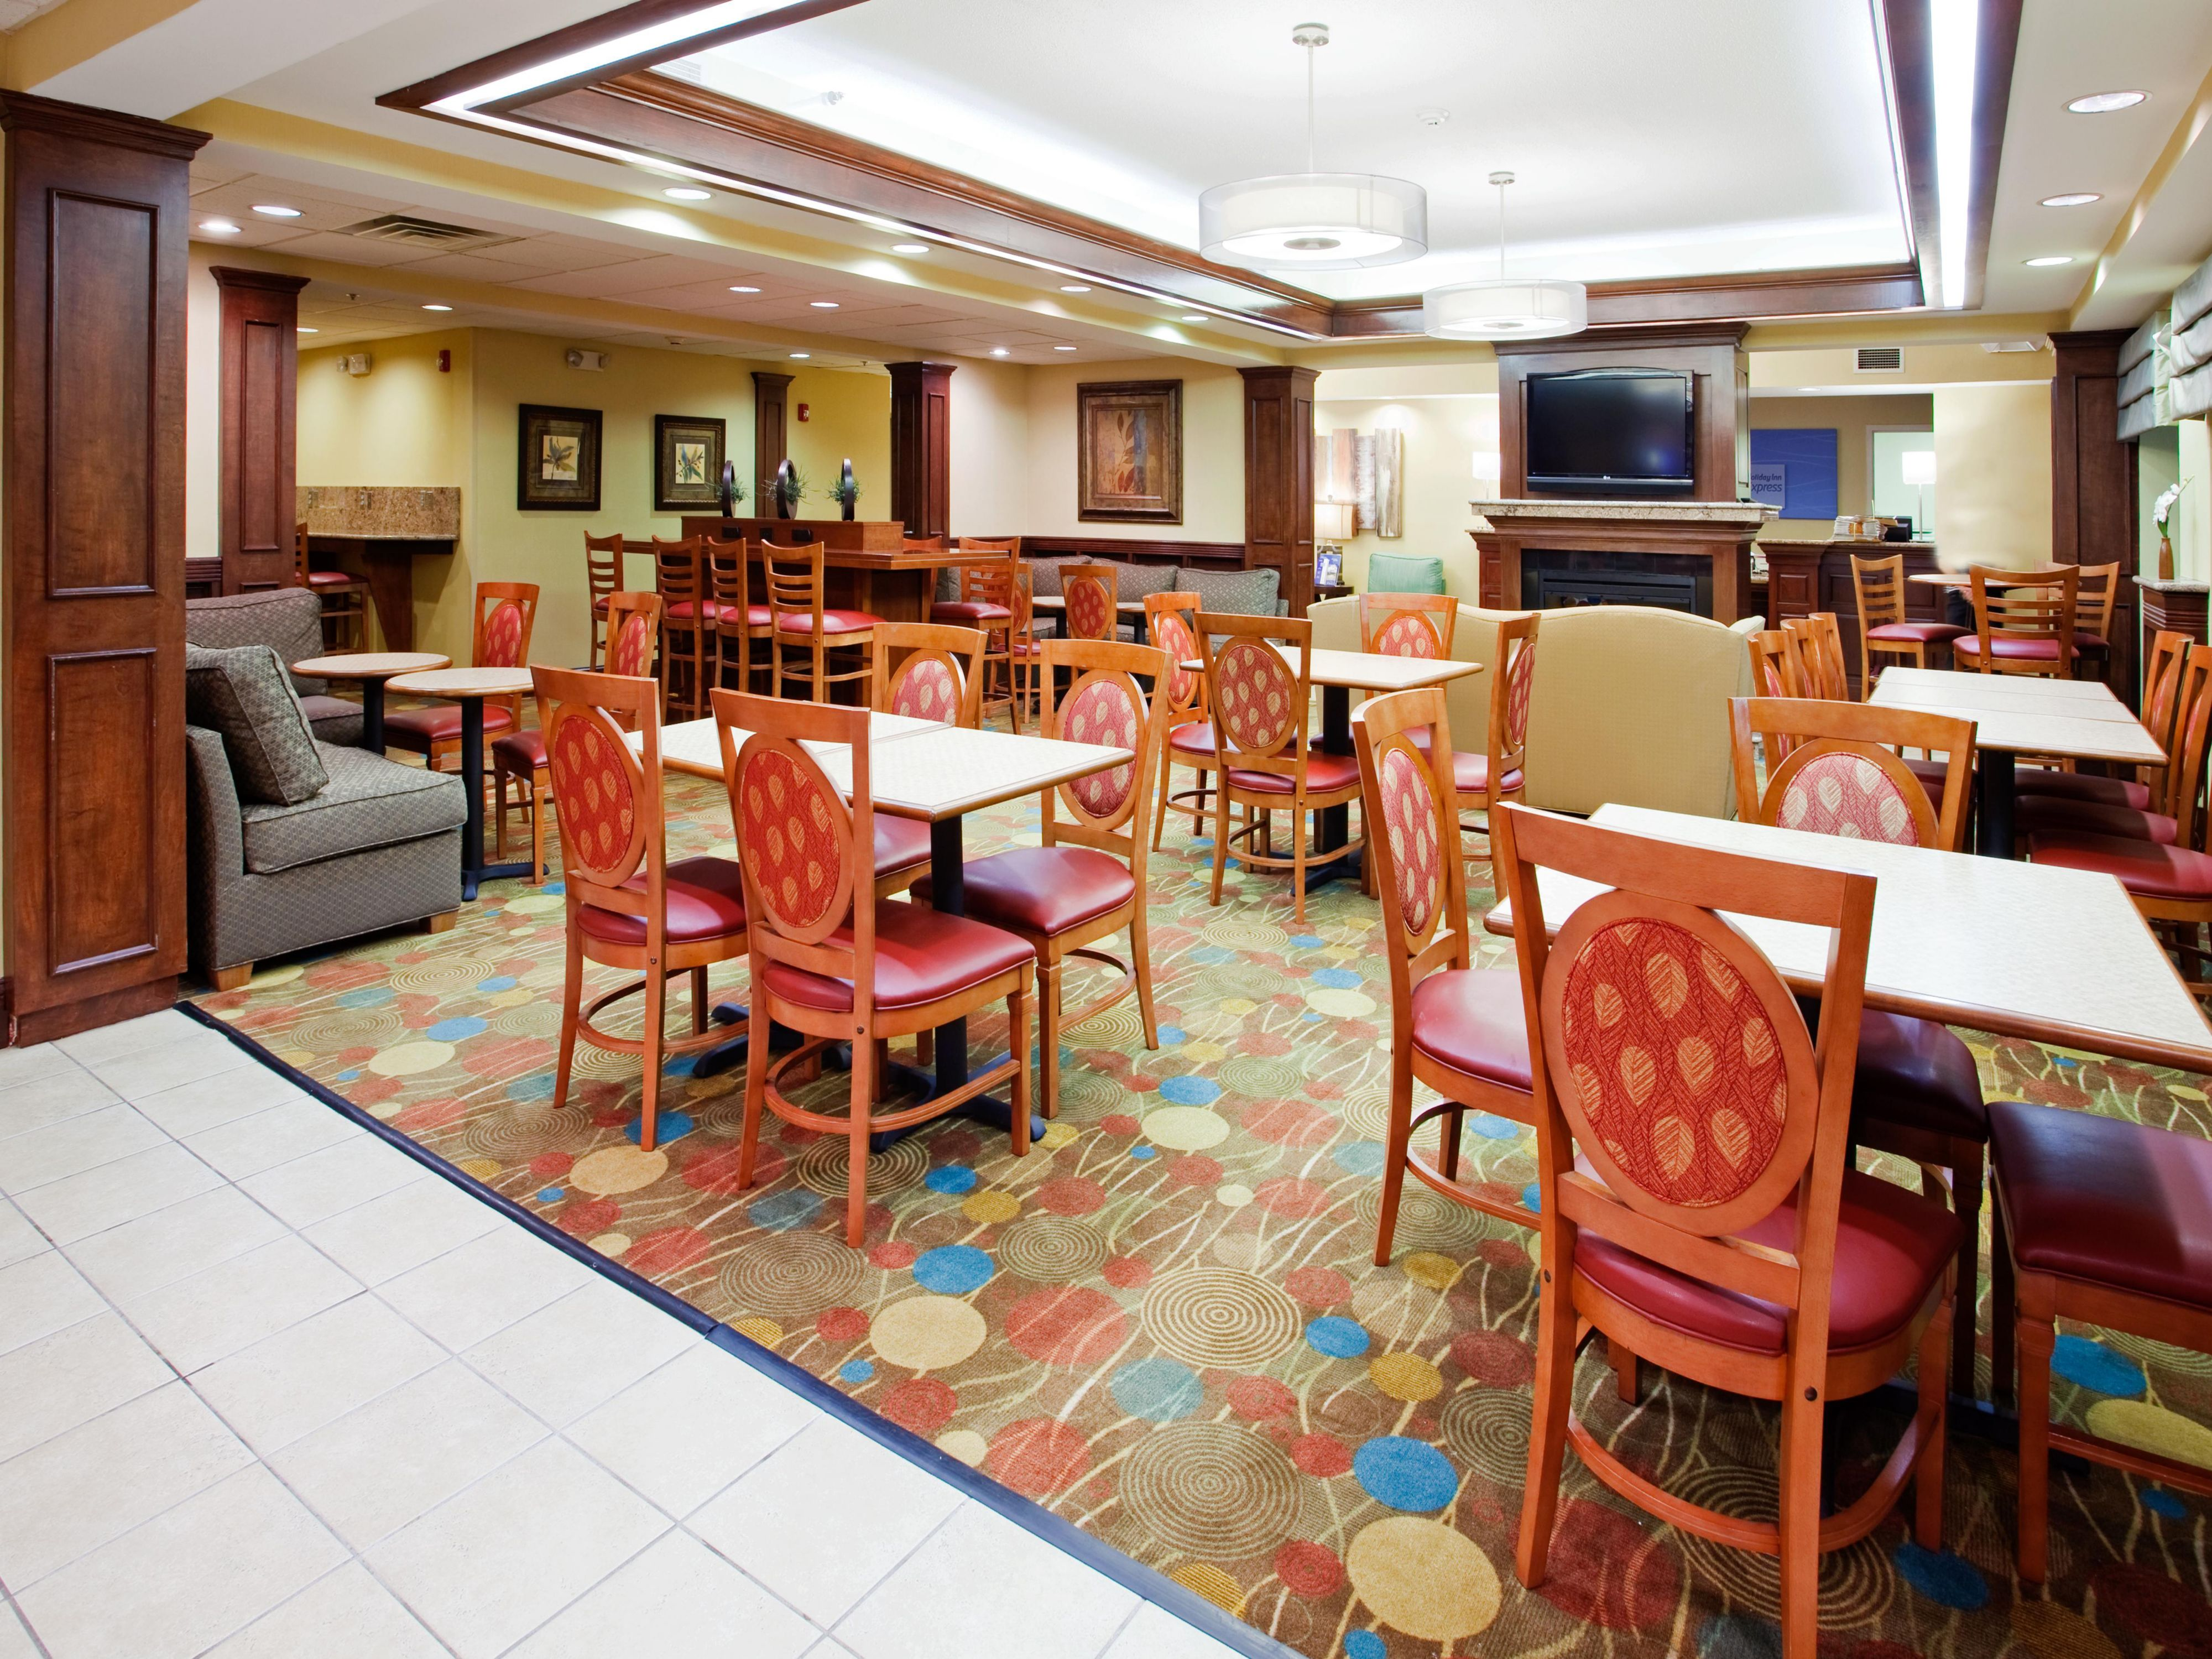 Enjoy your complimentary breakfast in our dining area